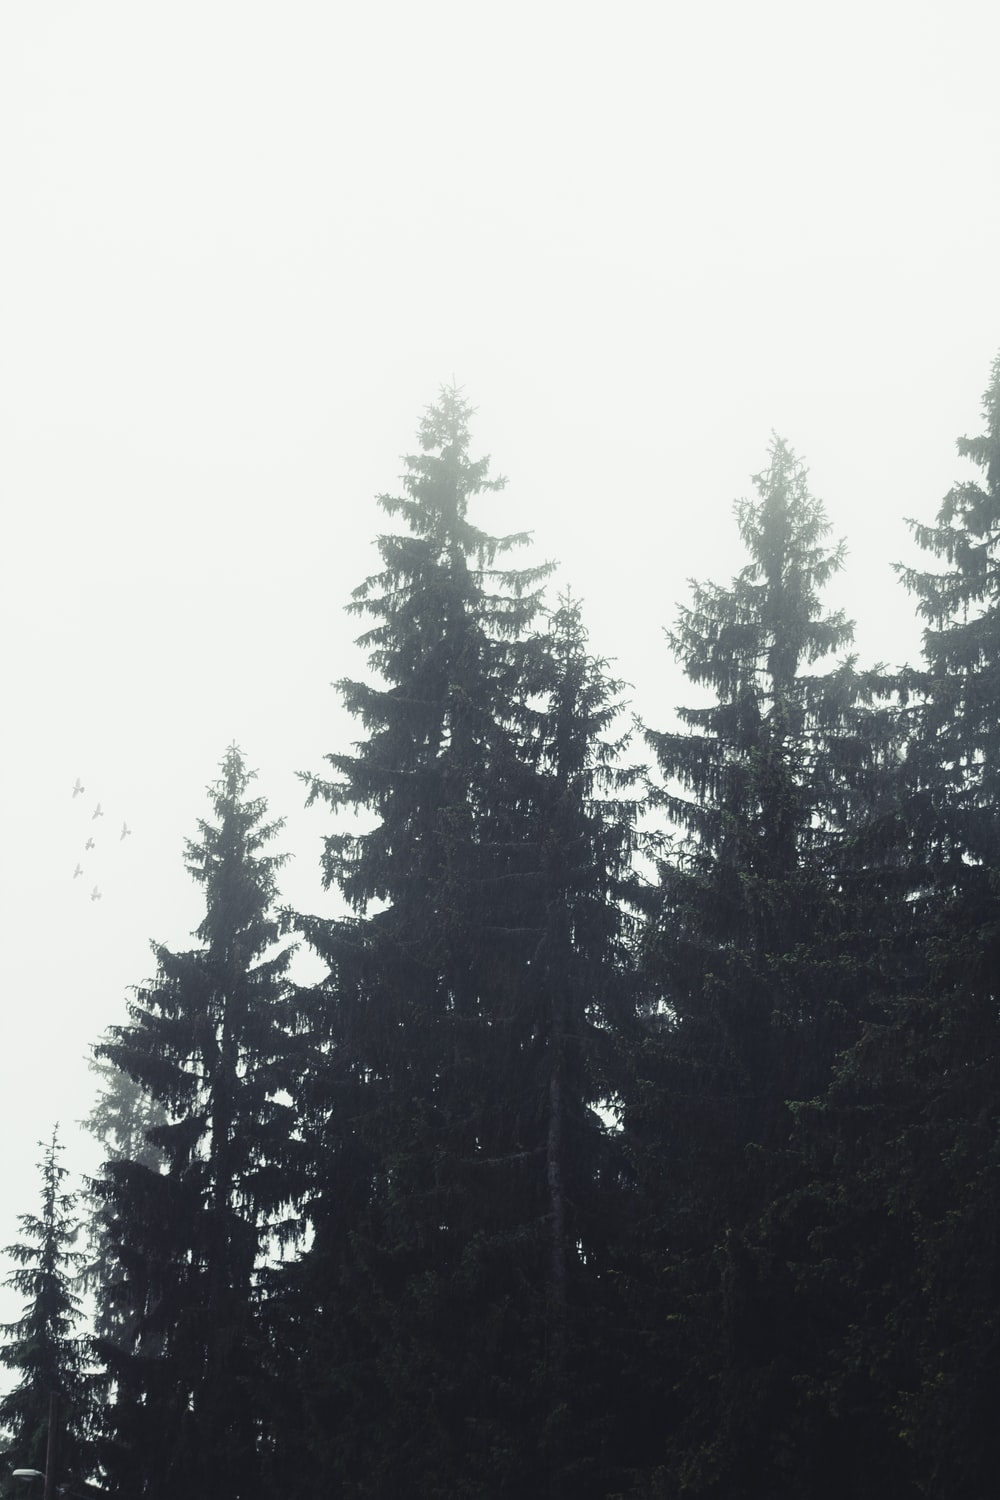 green pine trees under white sky during daytime